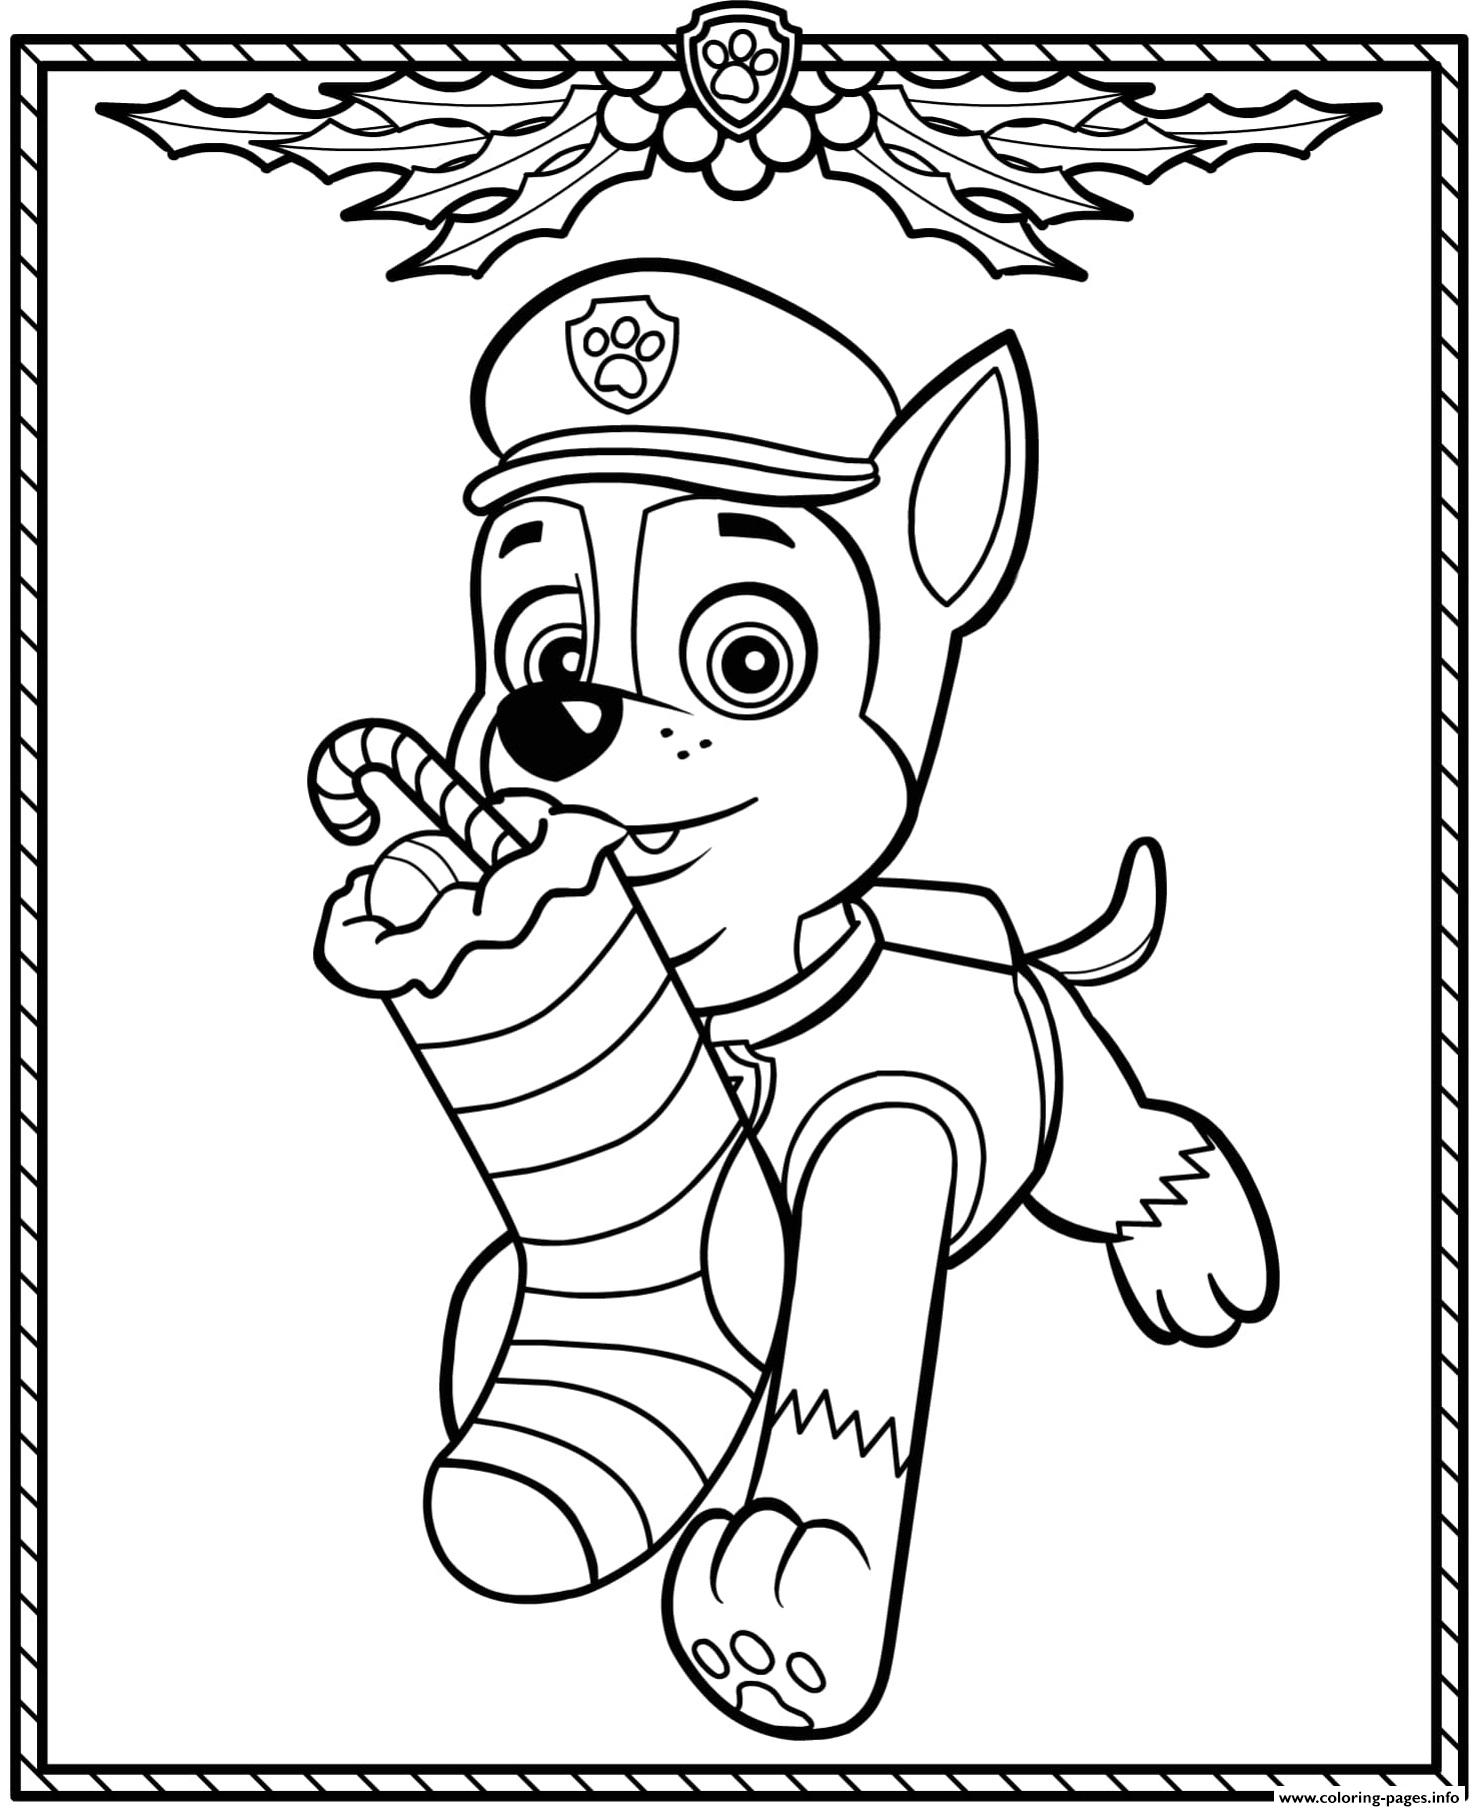 Christmas Paw Patrol Coloring Pages : christmas, patrol, coloring, pages, Patrol, Holiday, Christmas, Chase, Coloring, Pages, Printable